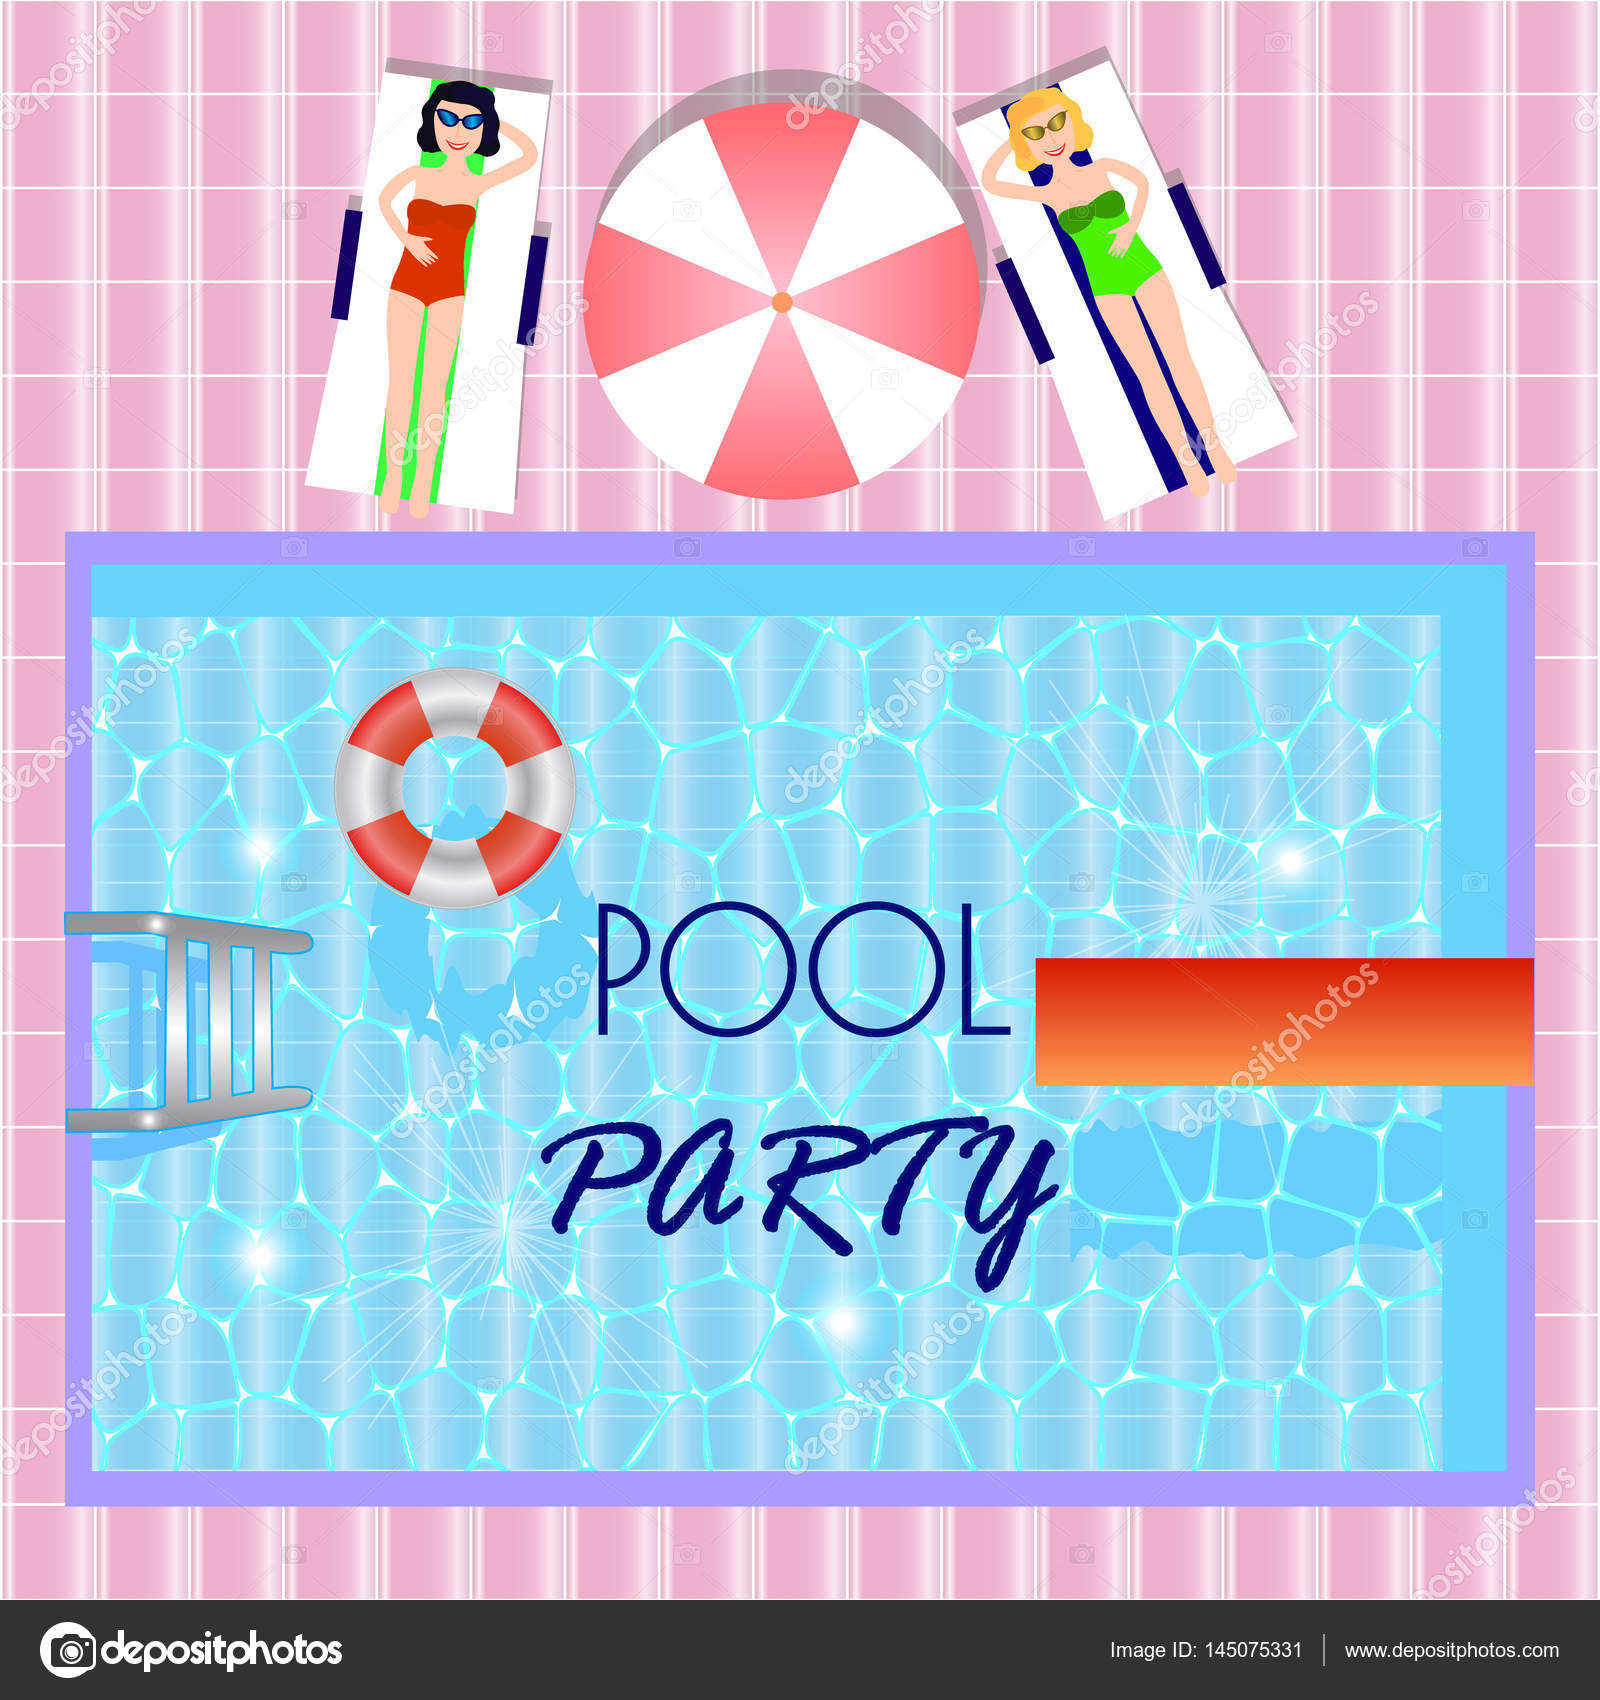 Pool party invitation with top view of pool girls laying in sunbeds pool party invitation with top view of pool girls laying in sunbedsvector illustration flyer of pool party vector poster for party stopboris Images